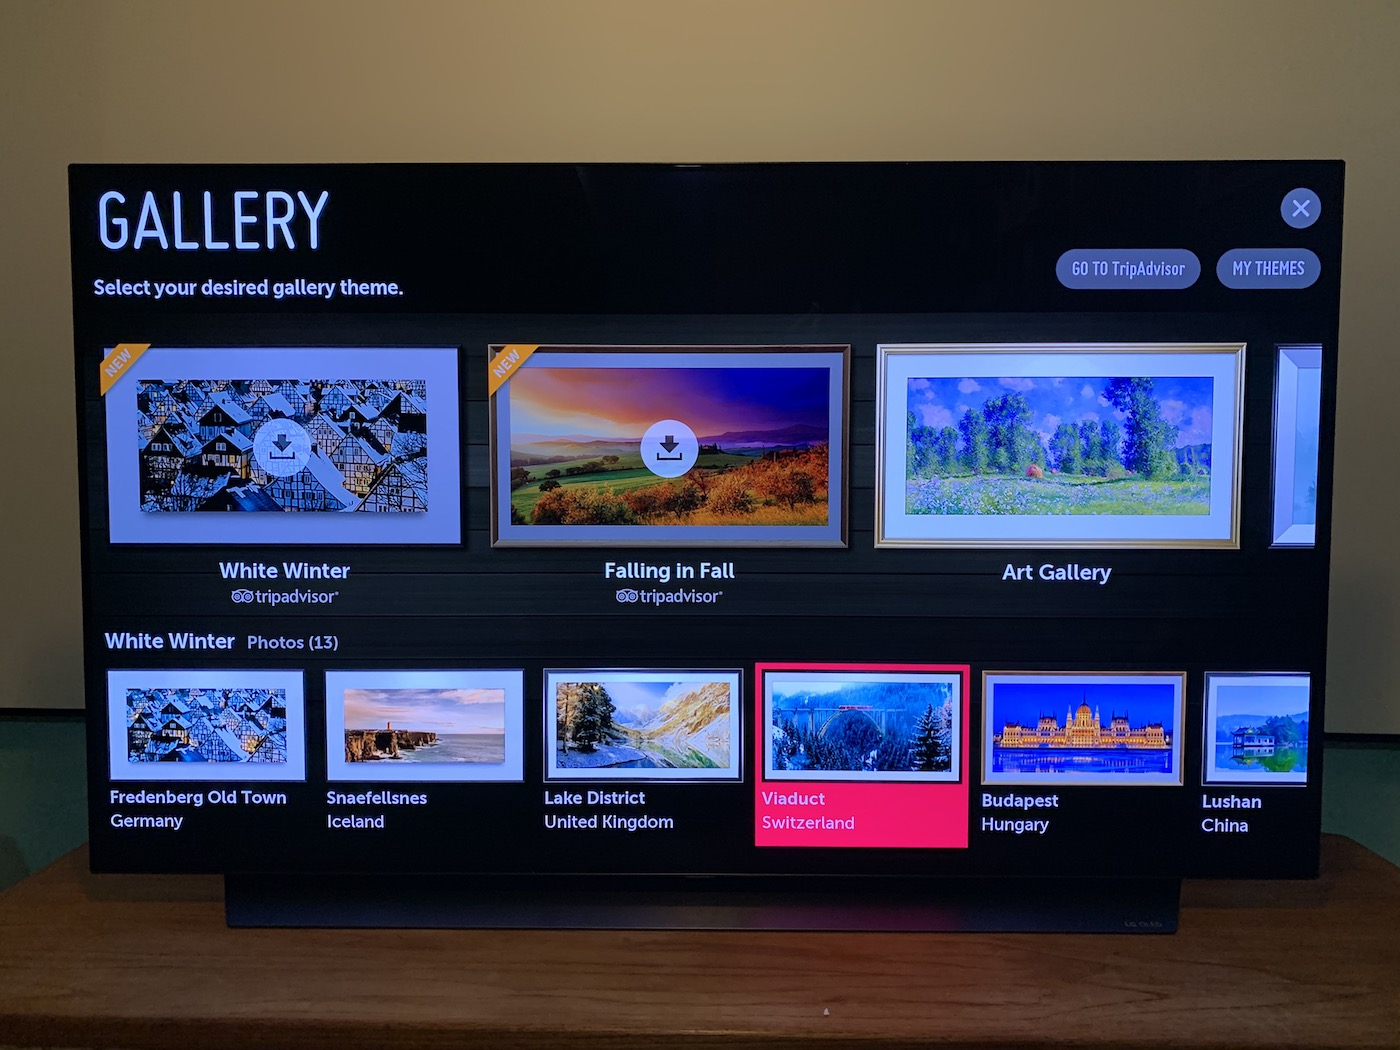 Gallery Mode of the LG C9 OLED 4K TV